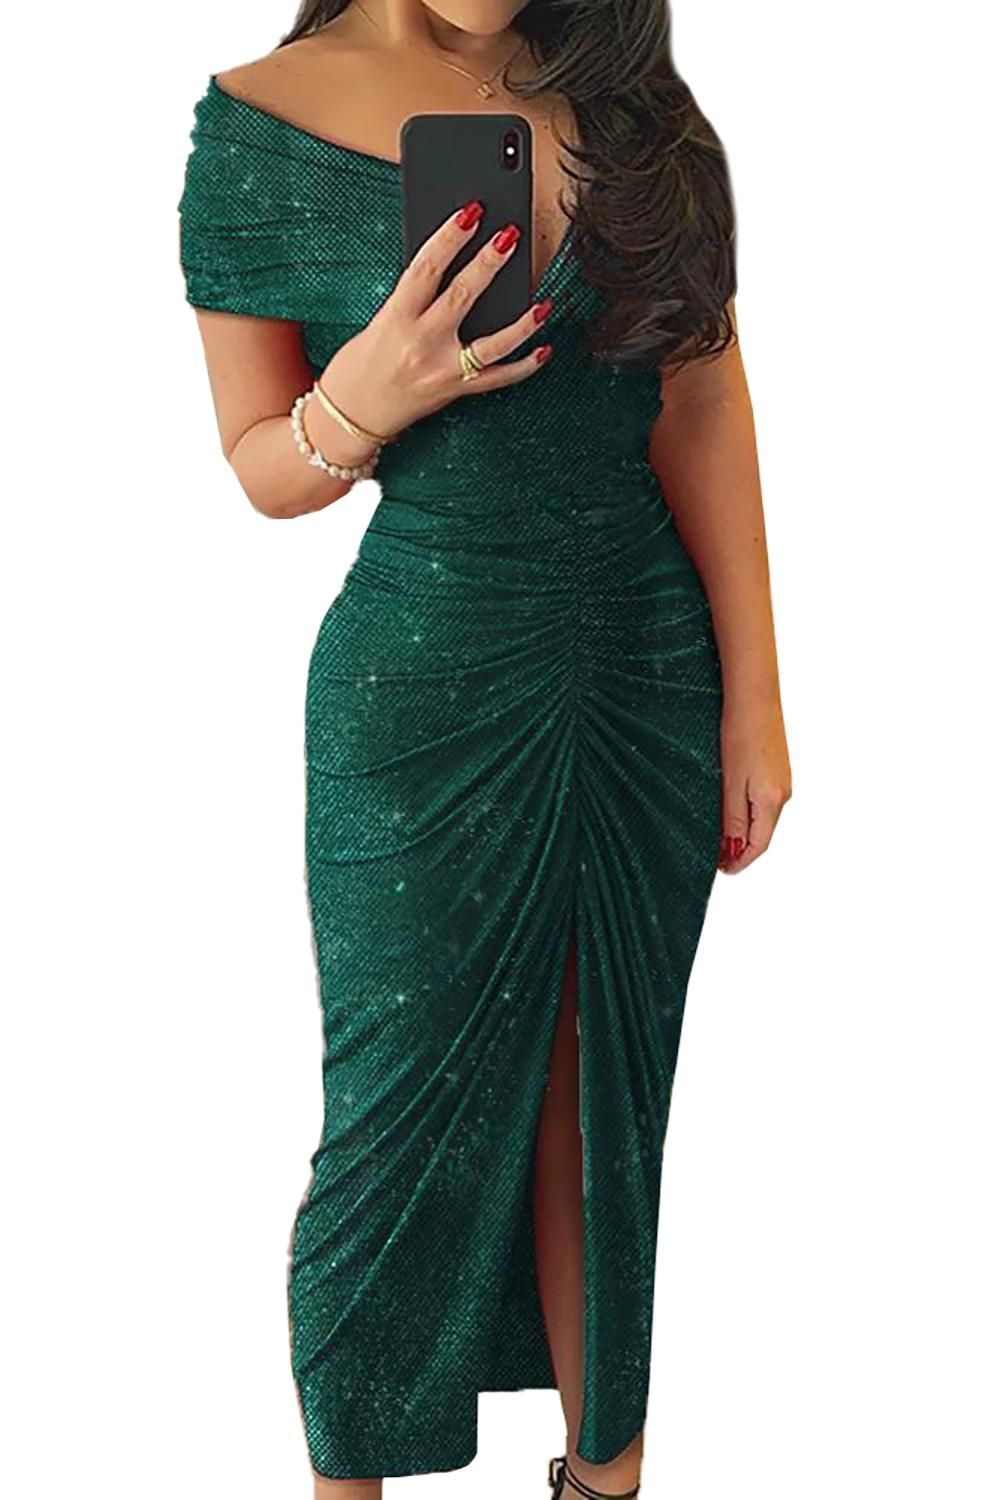 Green Glitter Off Shoulder Ruched Slit Party Dress